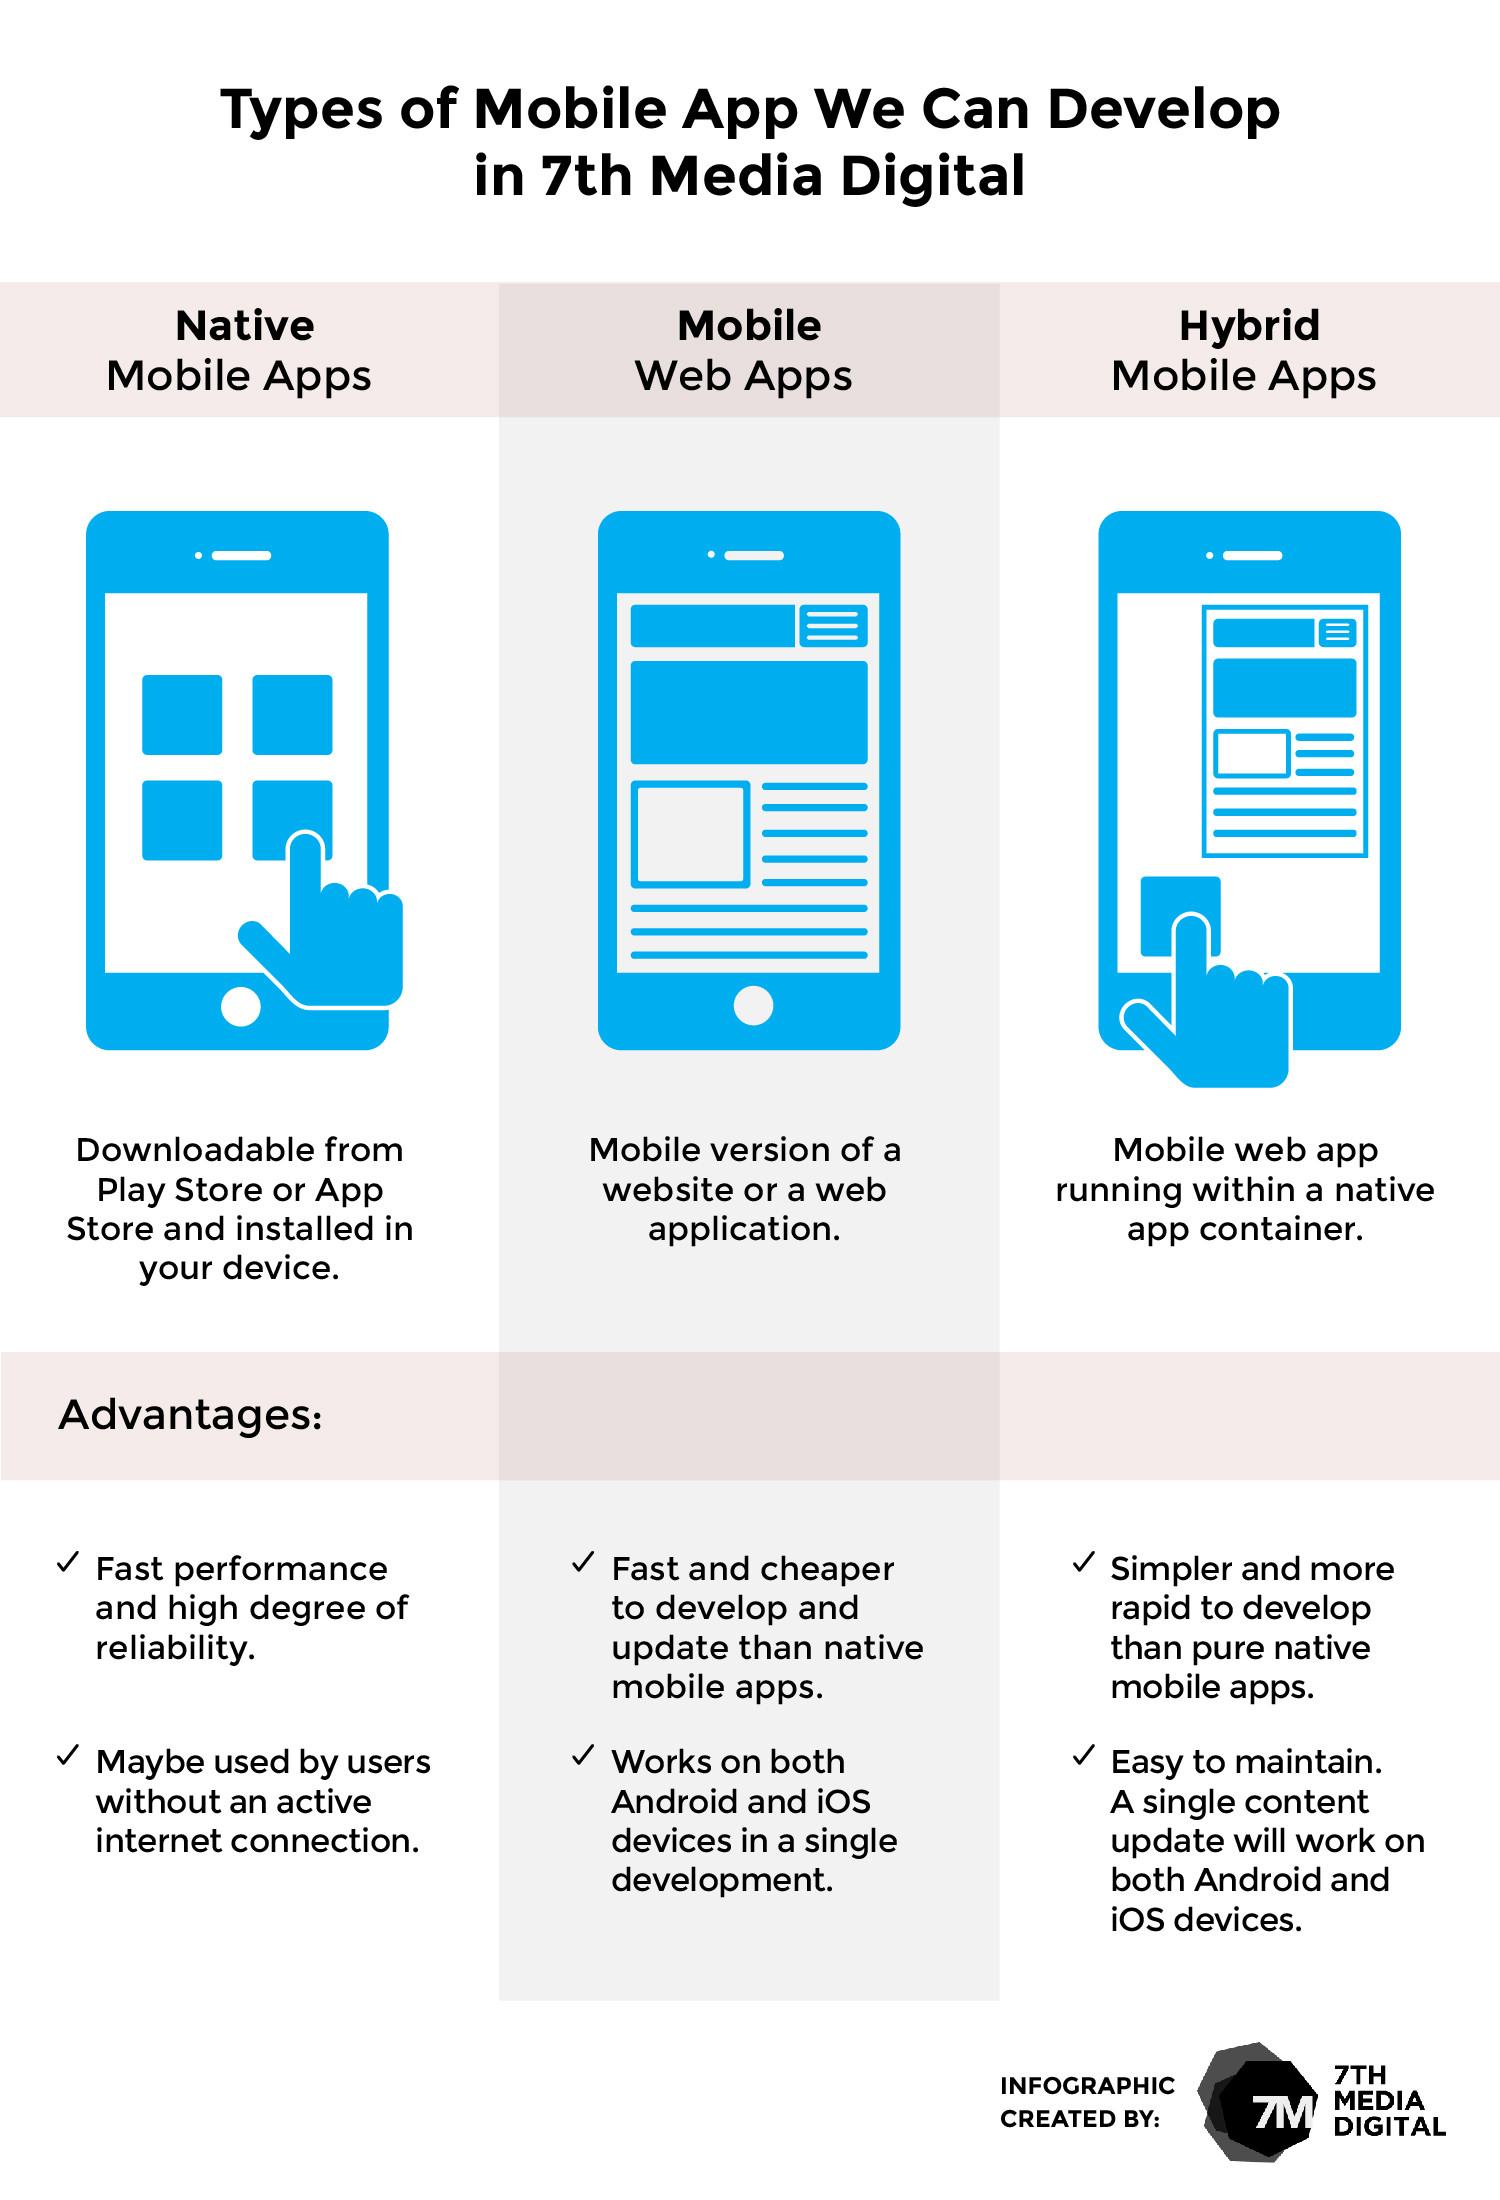 Types of Mobile Applications We Can Develop in 7th Media Digital Infographic